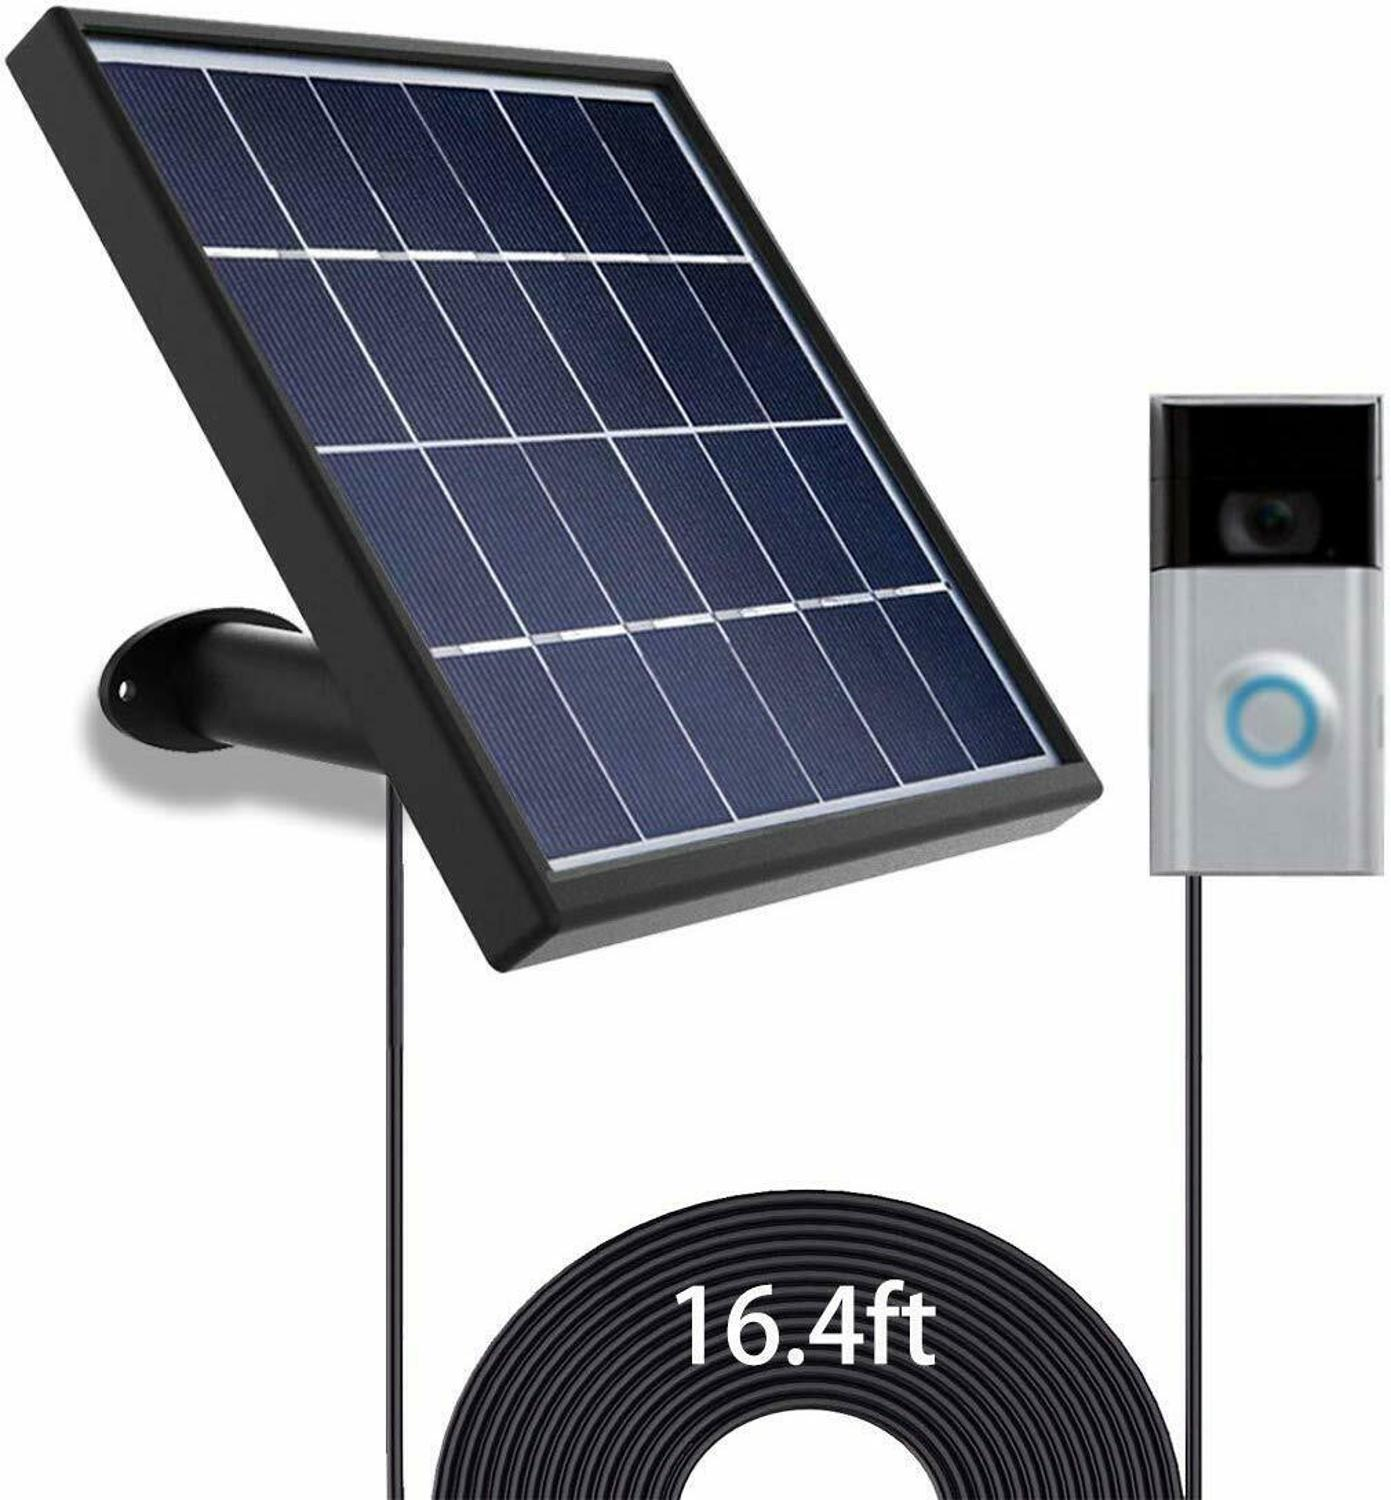 Solar Panel For Ring Video Doorbell 1 Waterproof Charge 5 V 3.2W (Max) Output